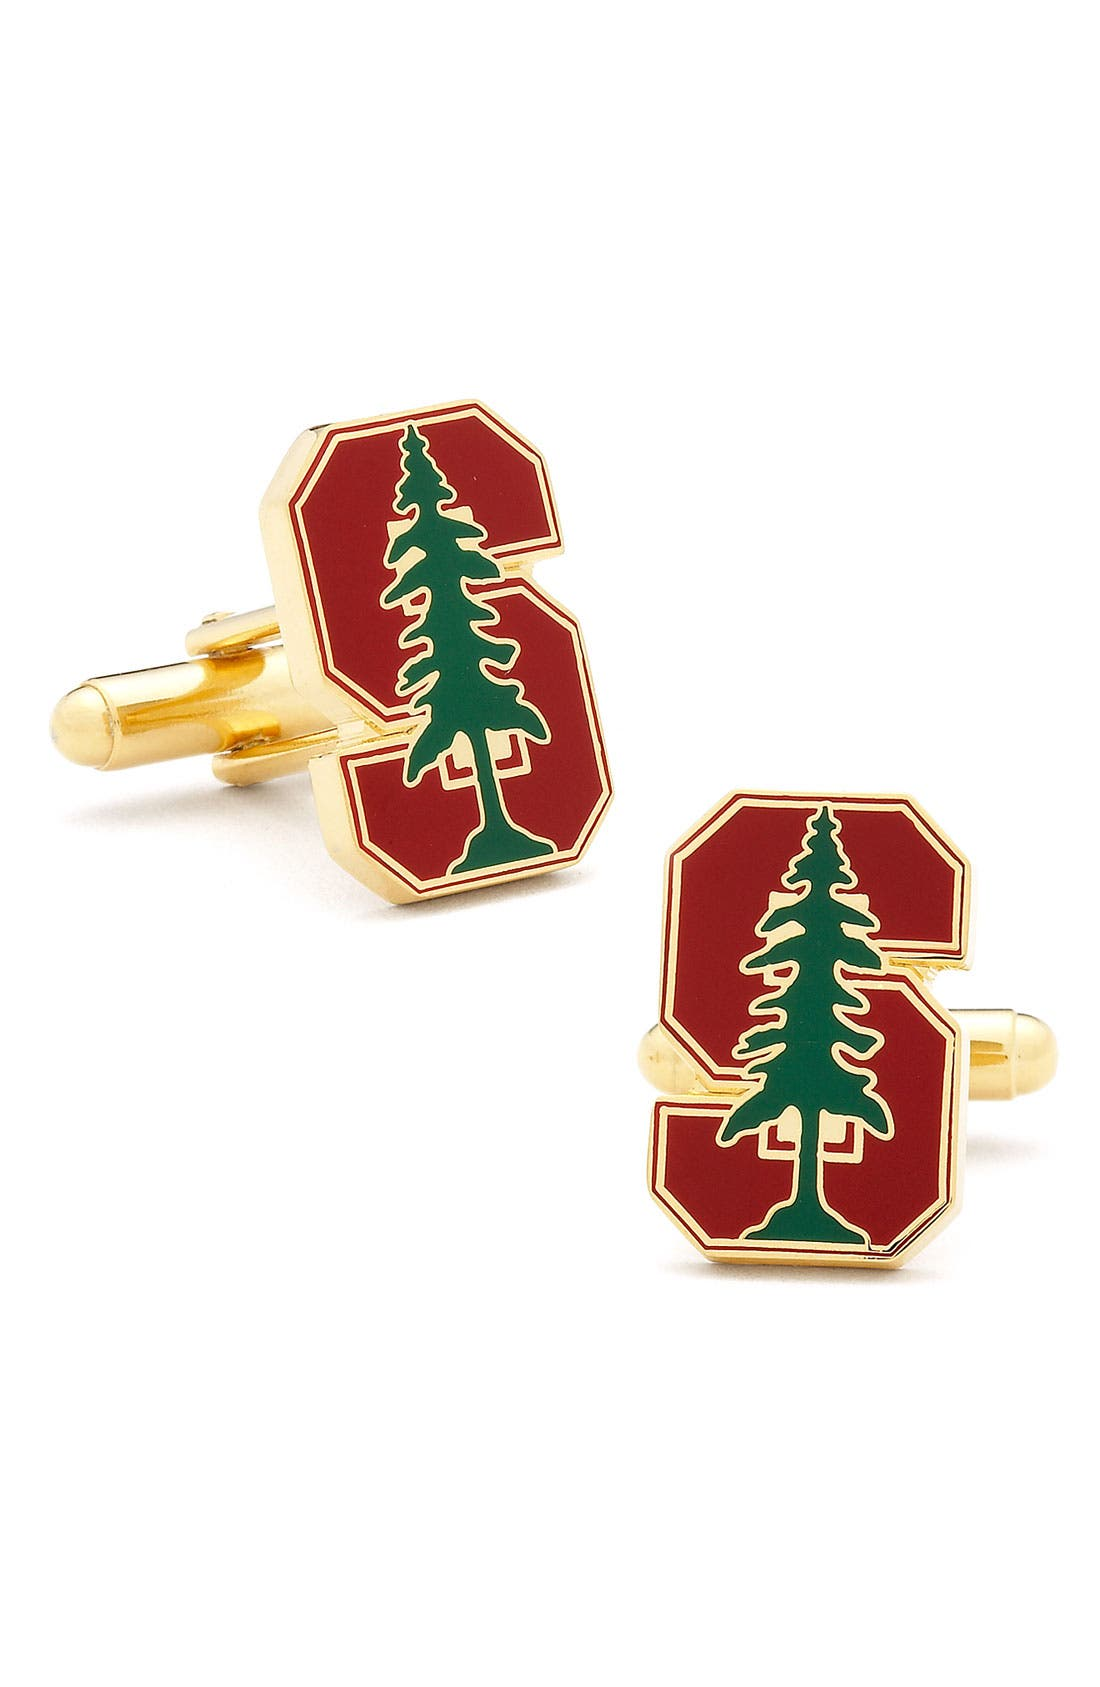 'Stanford Cardinal' Cuff Links,                             Main thumbnail 1, color,                             600